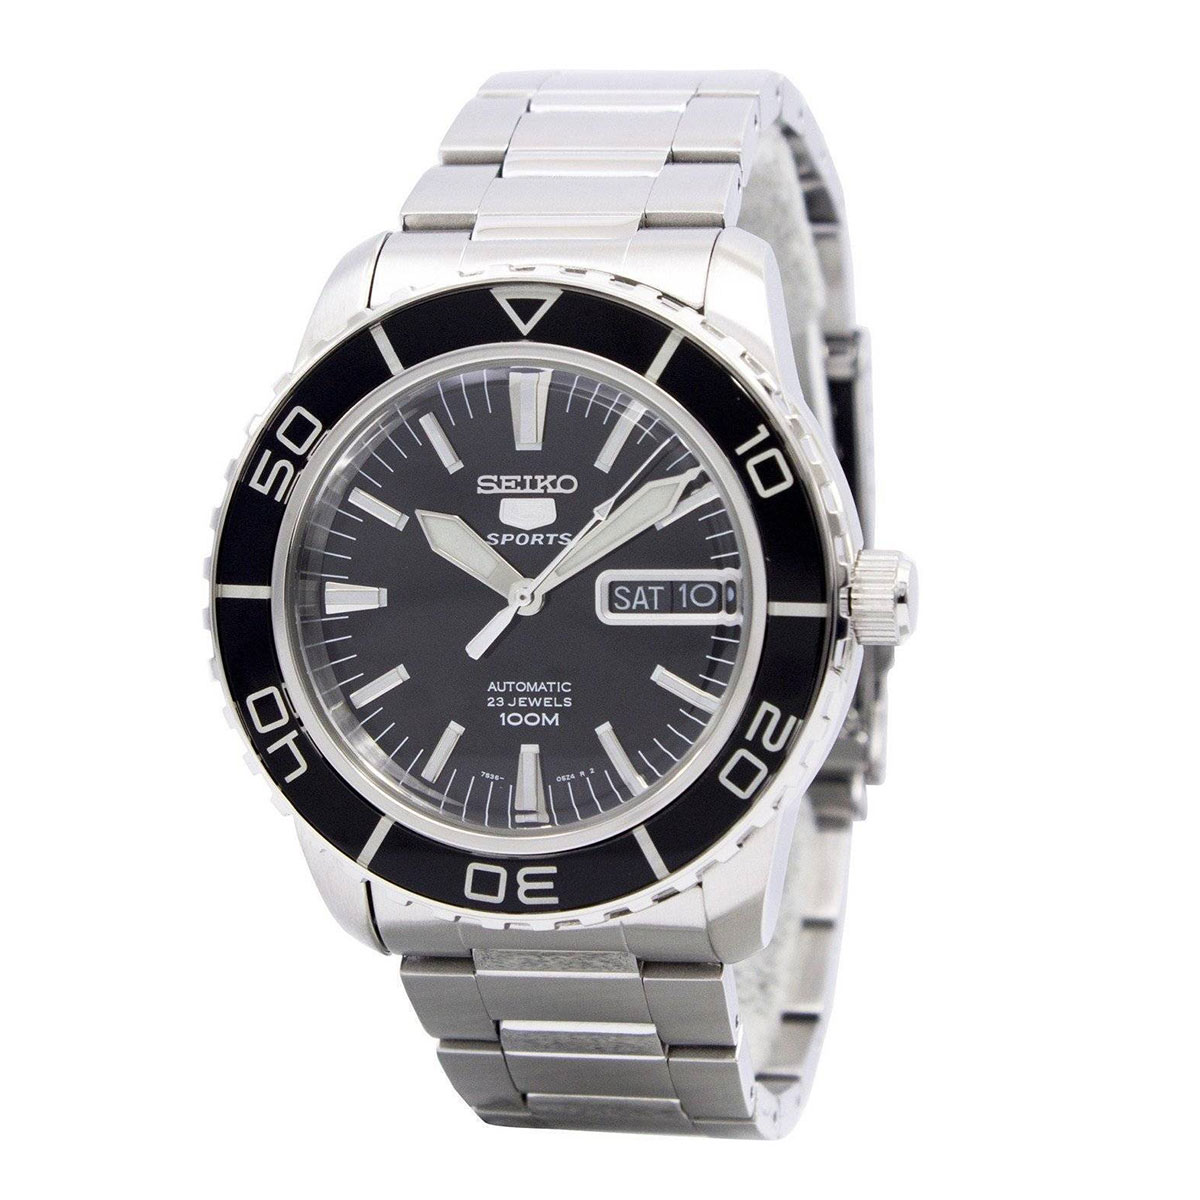 Seiko Analog Sport Mens 5 SPORTS   Watch SNZH55K1 - <span itemprop='availableAtOrFrom'>UK, United Kingdom</span> - 1. Refund Policy : Refund will only be made if there is a manufacturing fault or DOA or we made a mistake. 2. Watches that have been resized, damaged, or otherwise altered after delivery will  - UK, United Kingdom